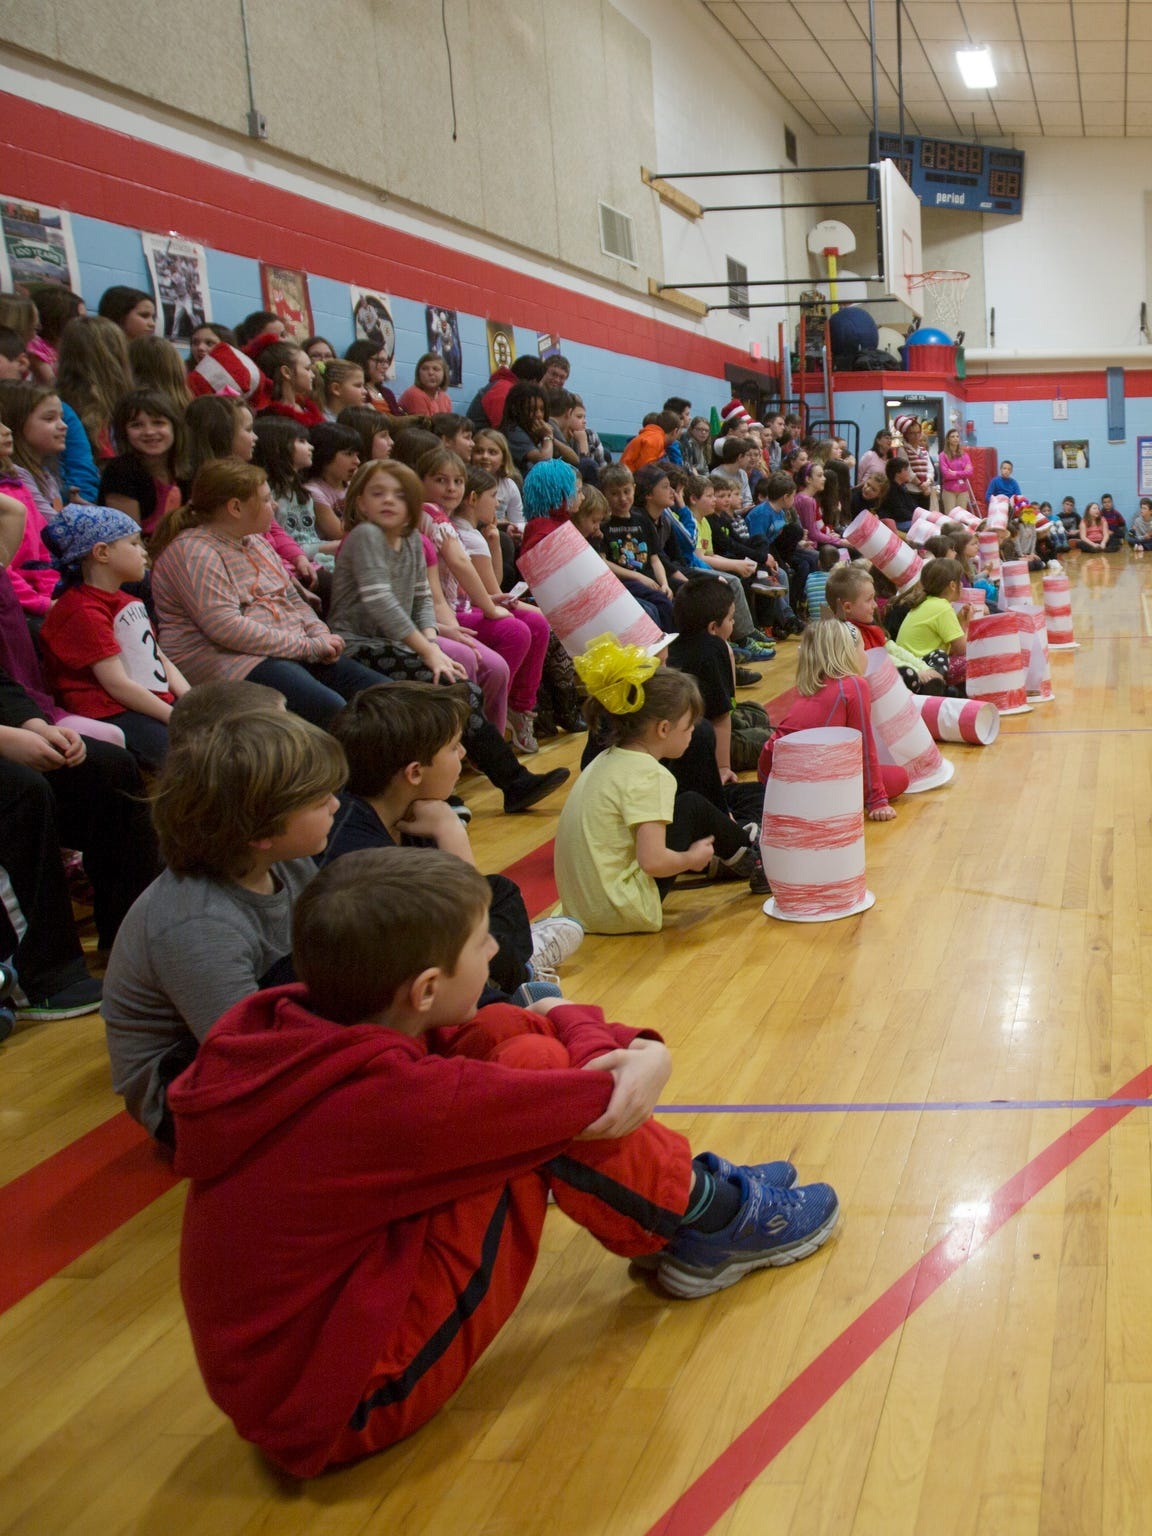 Students at Dedham School in Dedham, Maine, take part in an assembly March 3, 2016.